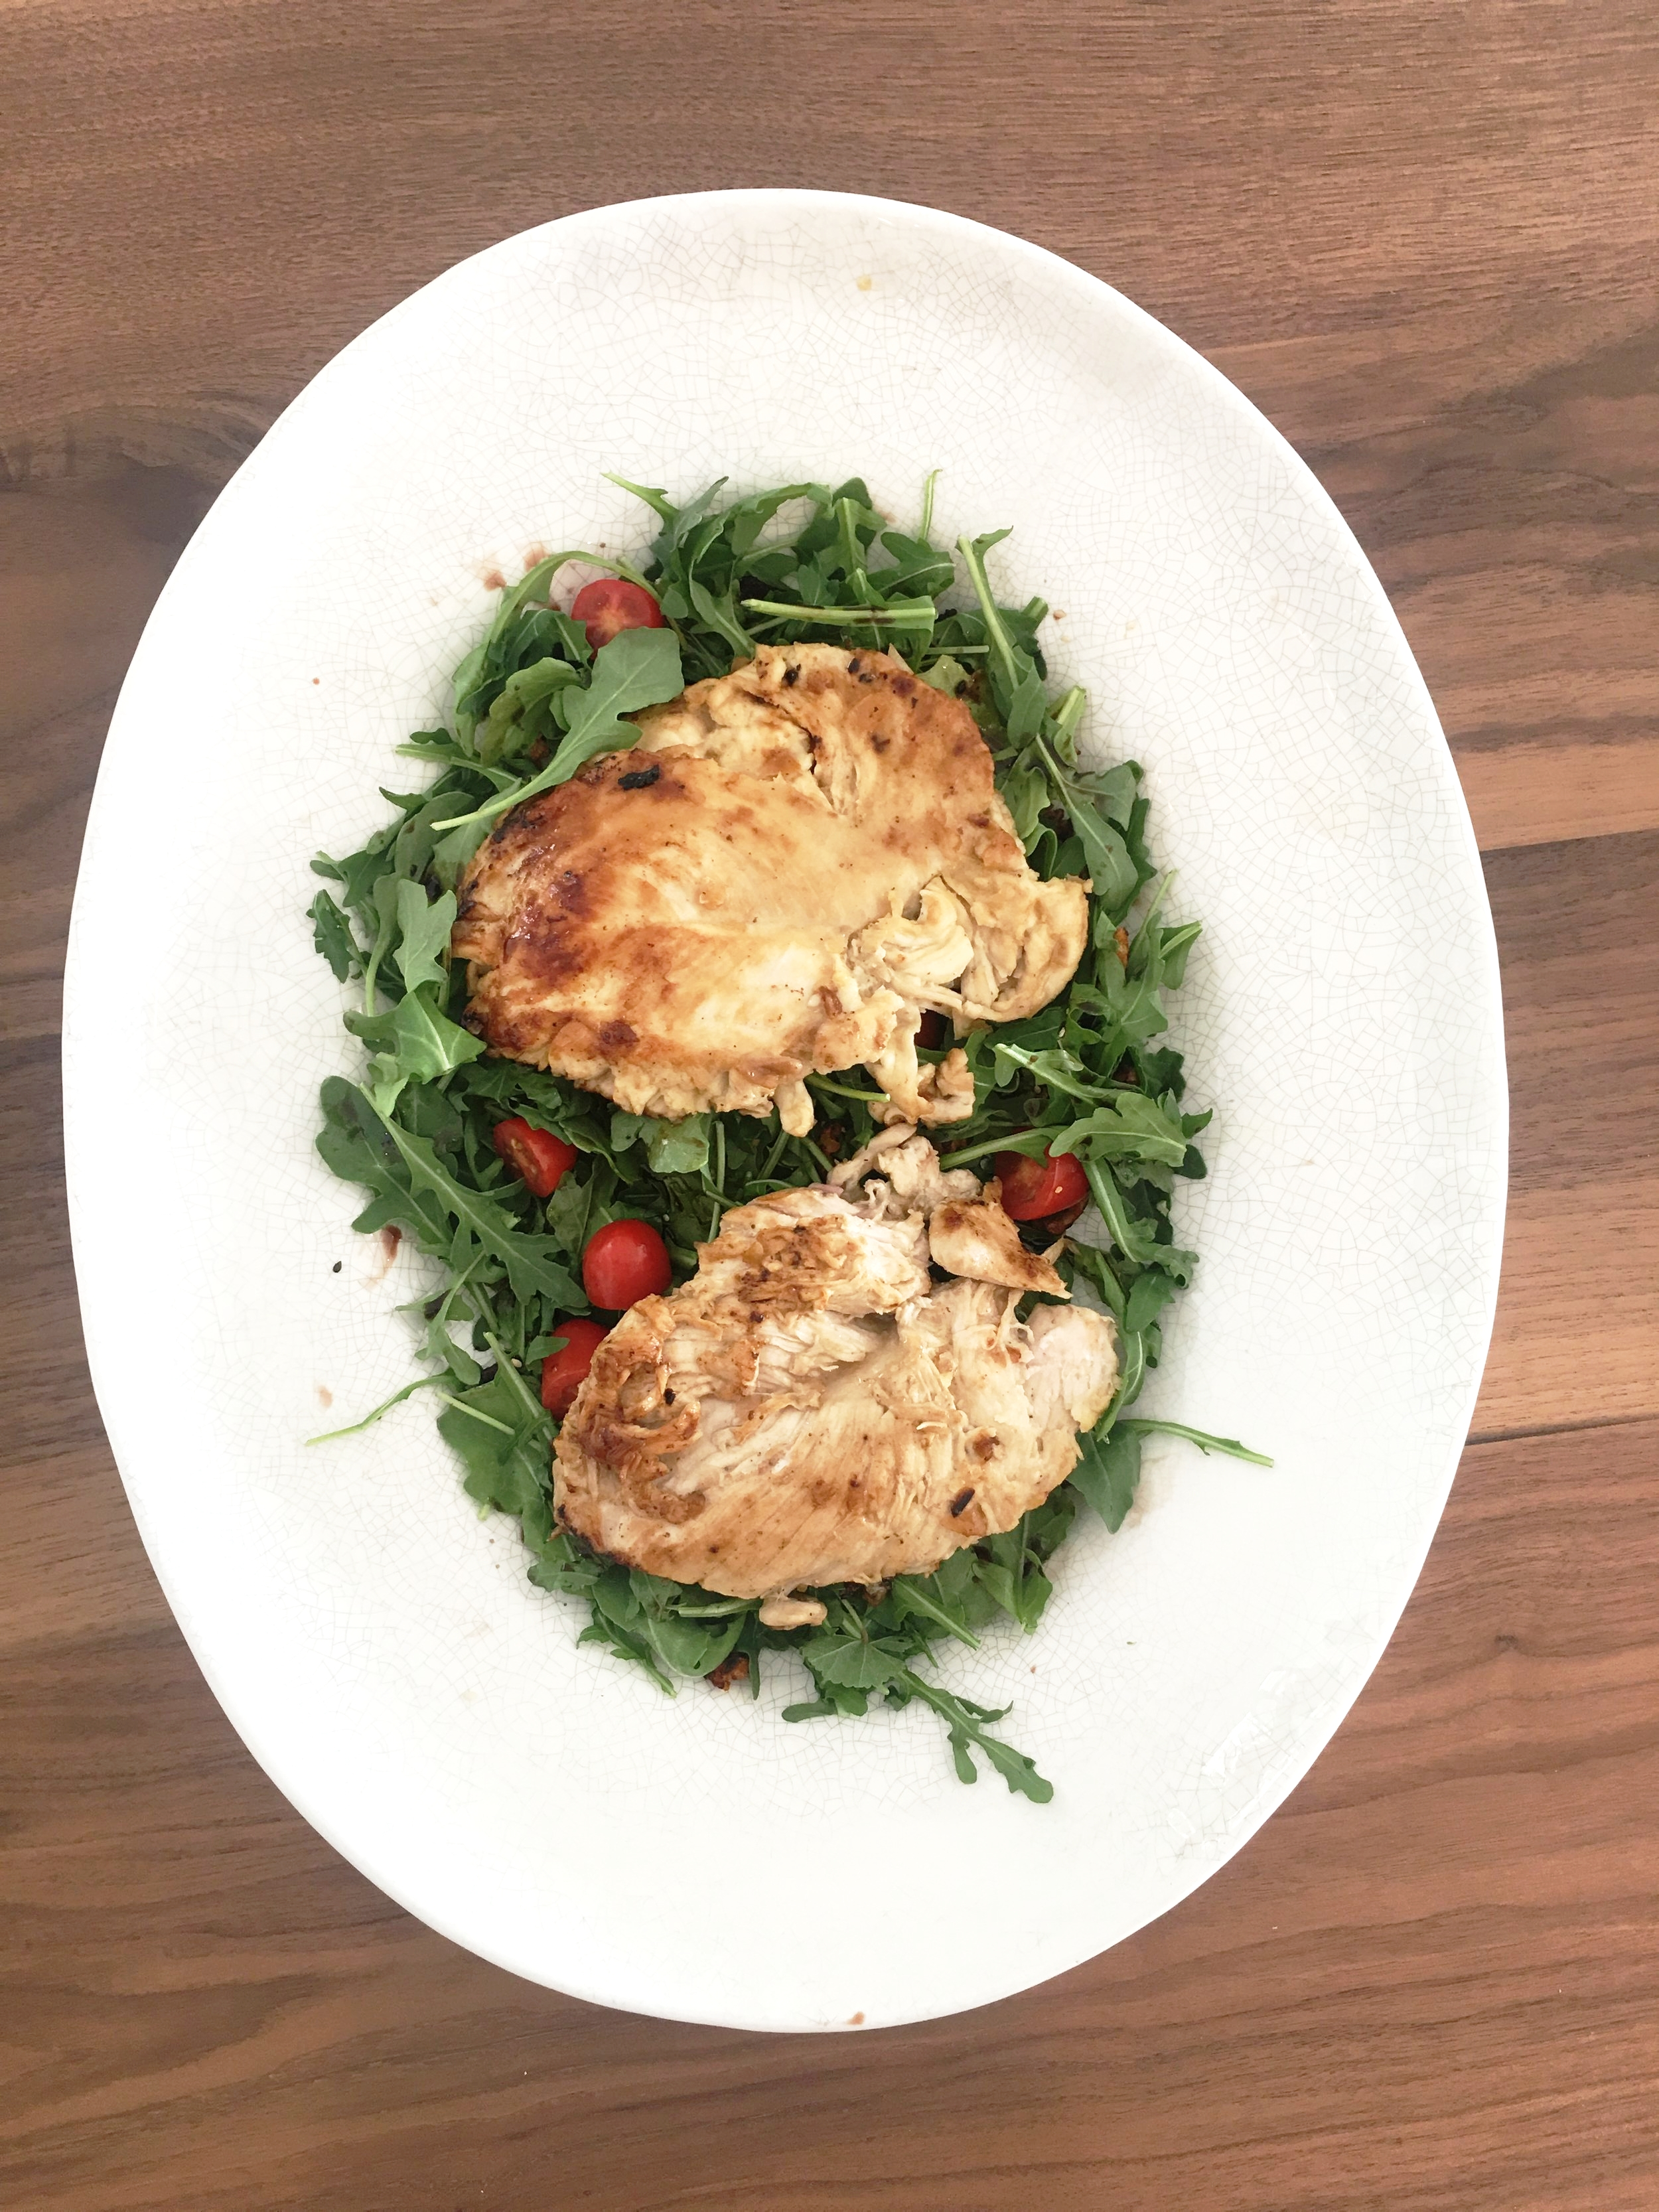 Here is an easy and light chicken dish,  perfect for an al fresco dinner this summer!